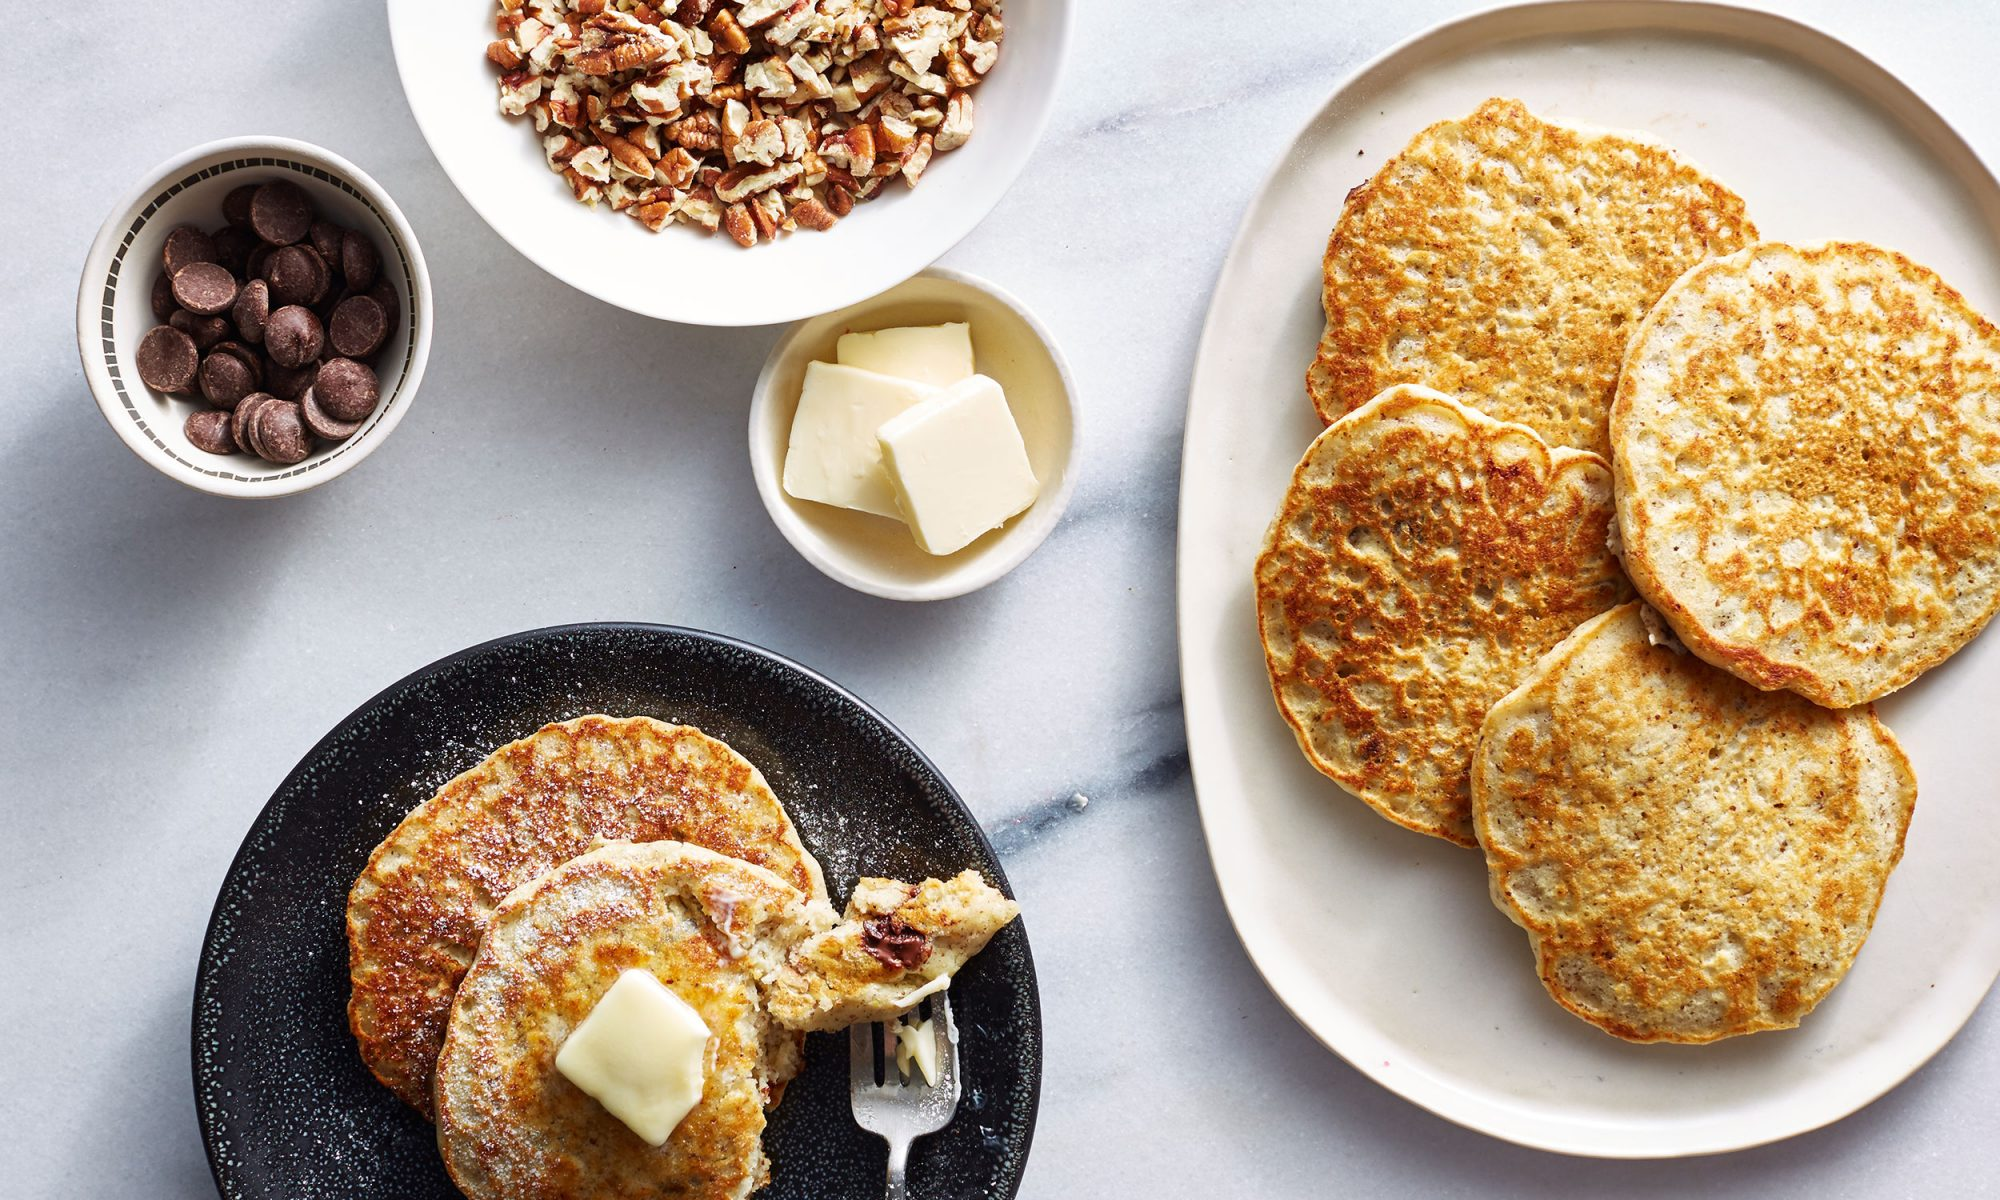 EC: 2 Crucial Baking Substitutions That Will Save Your Breakfast